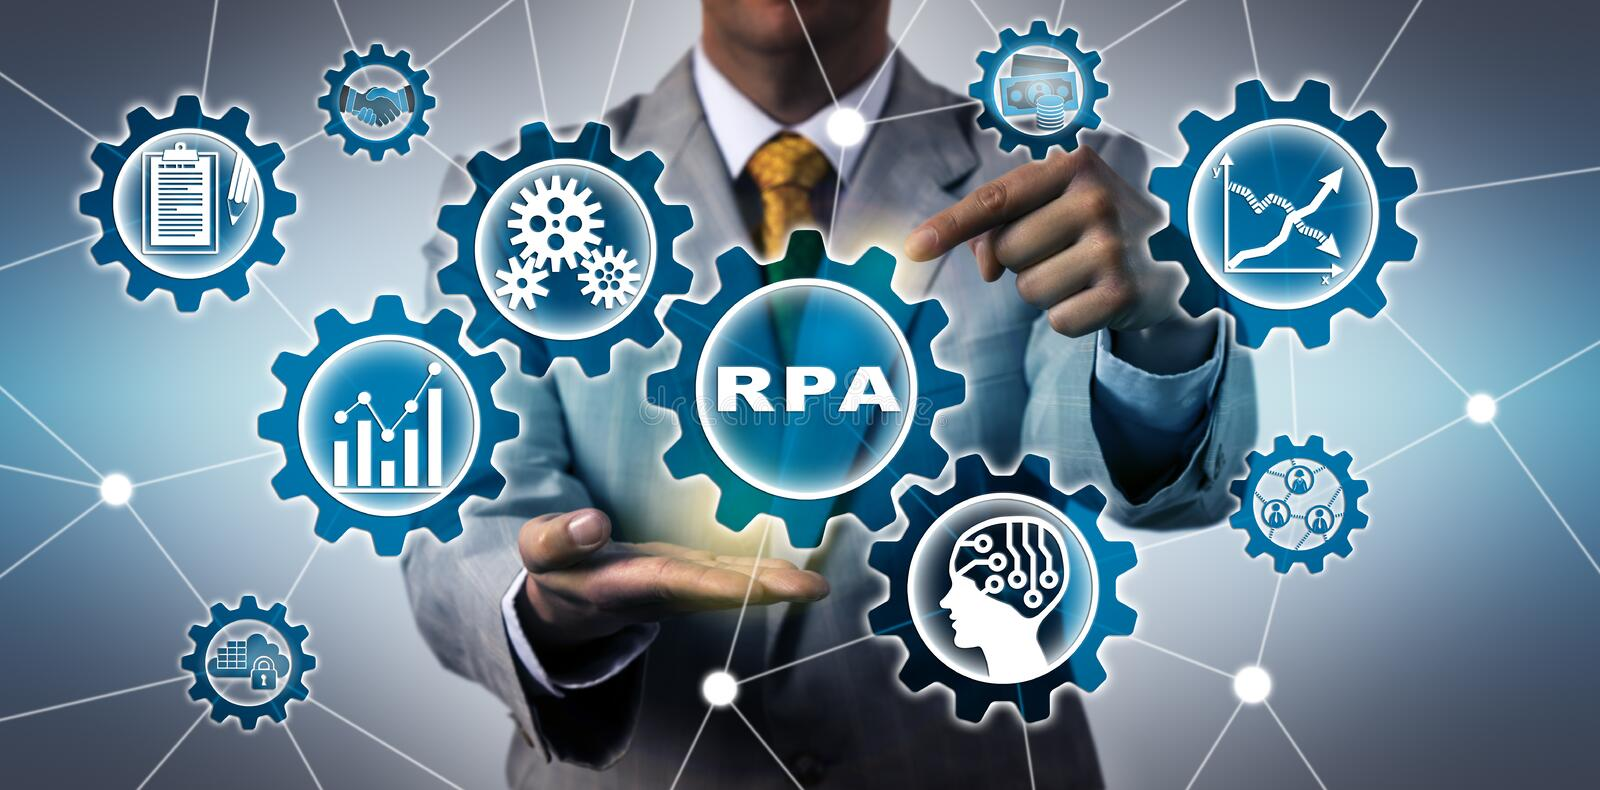 Torso von Anwendung IT-Manager-Activating RPA stockbilder